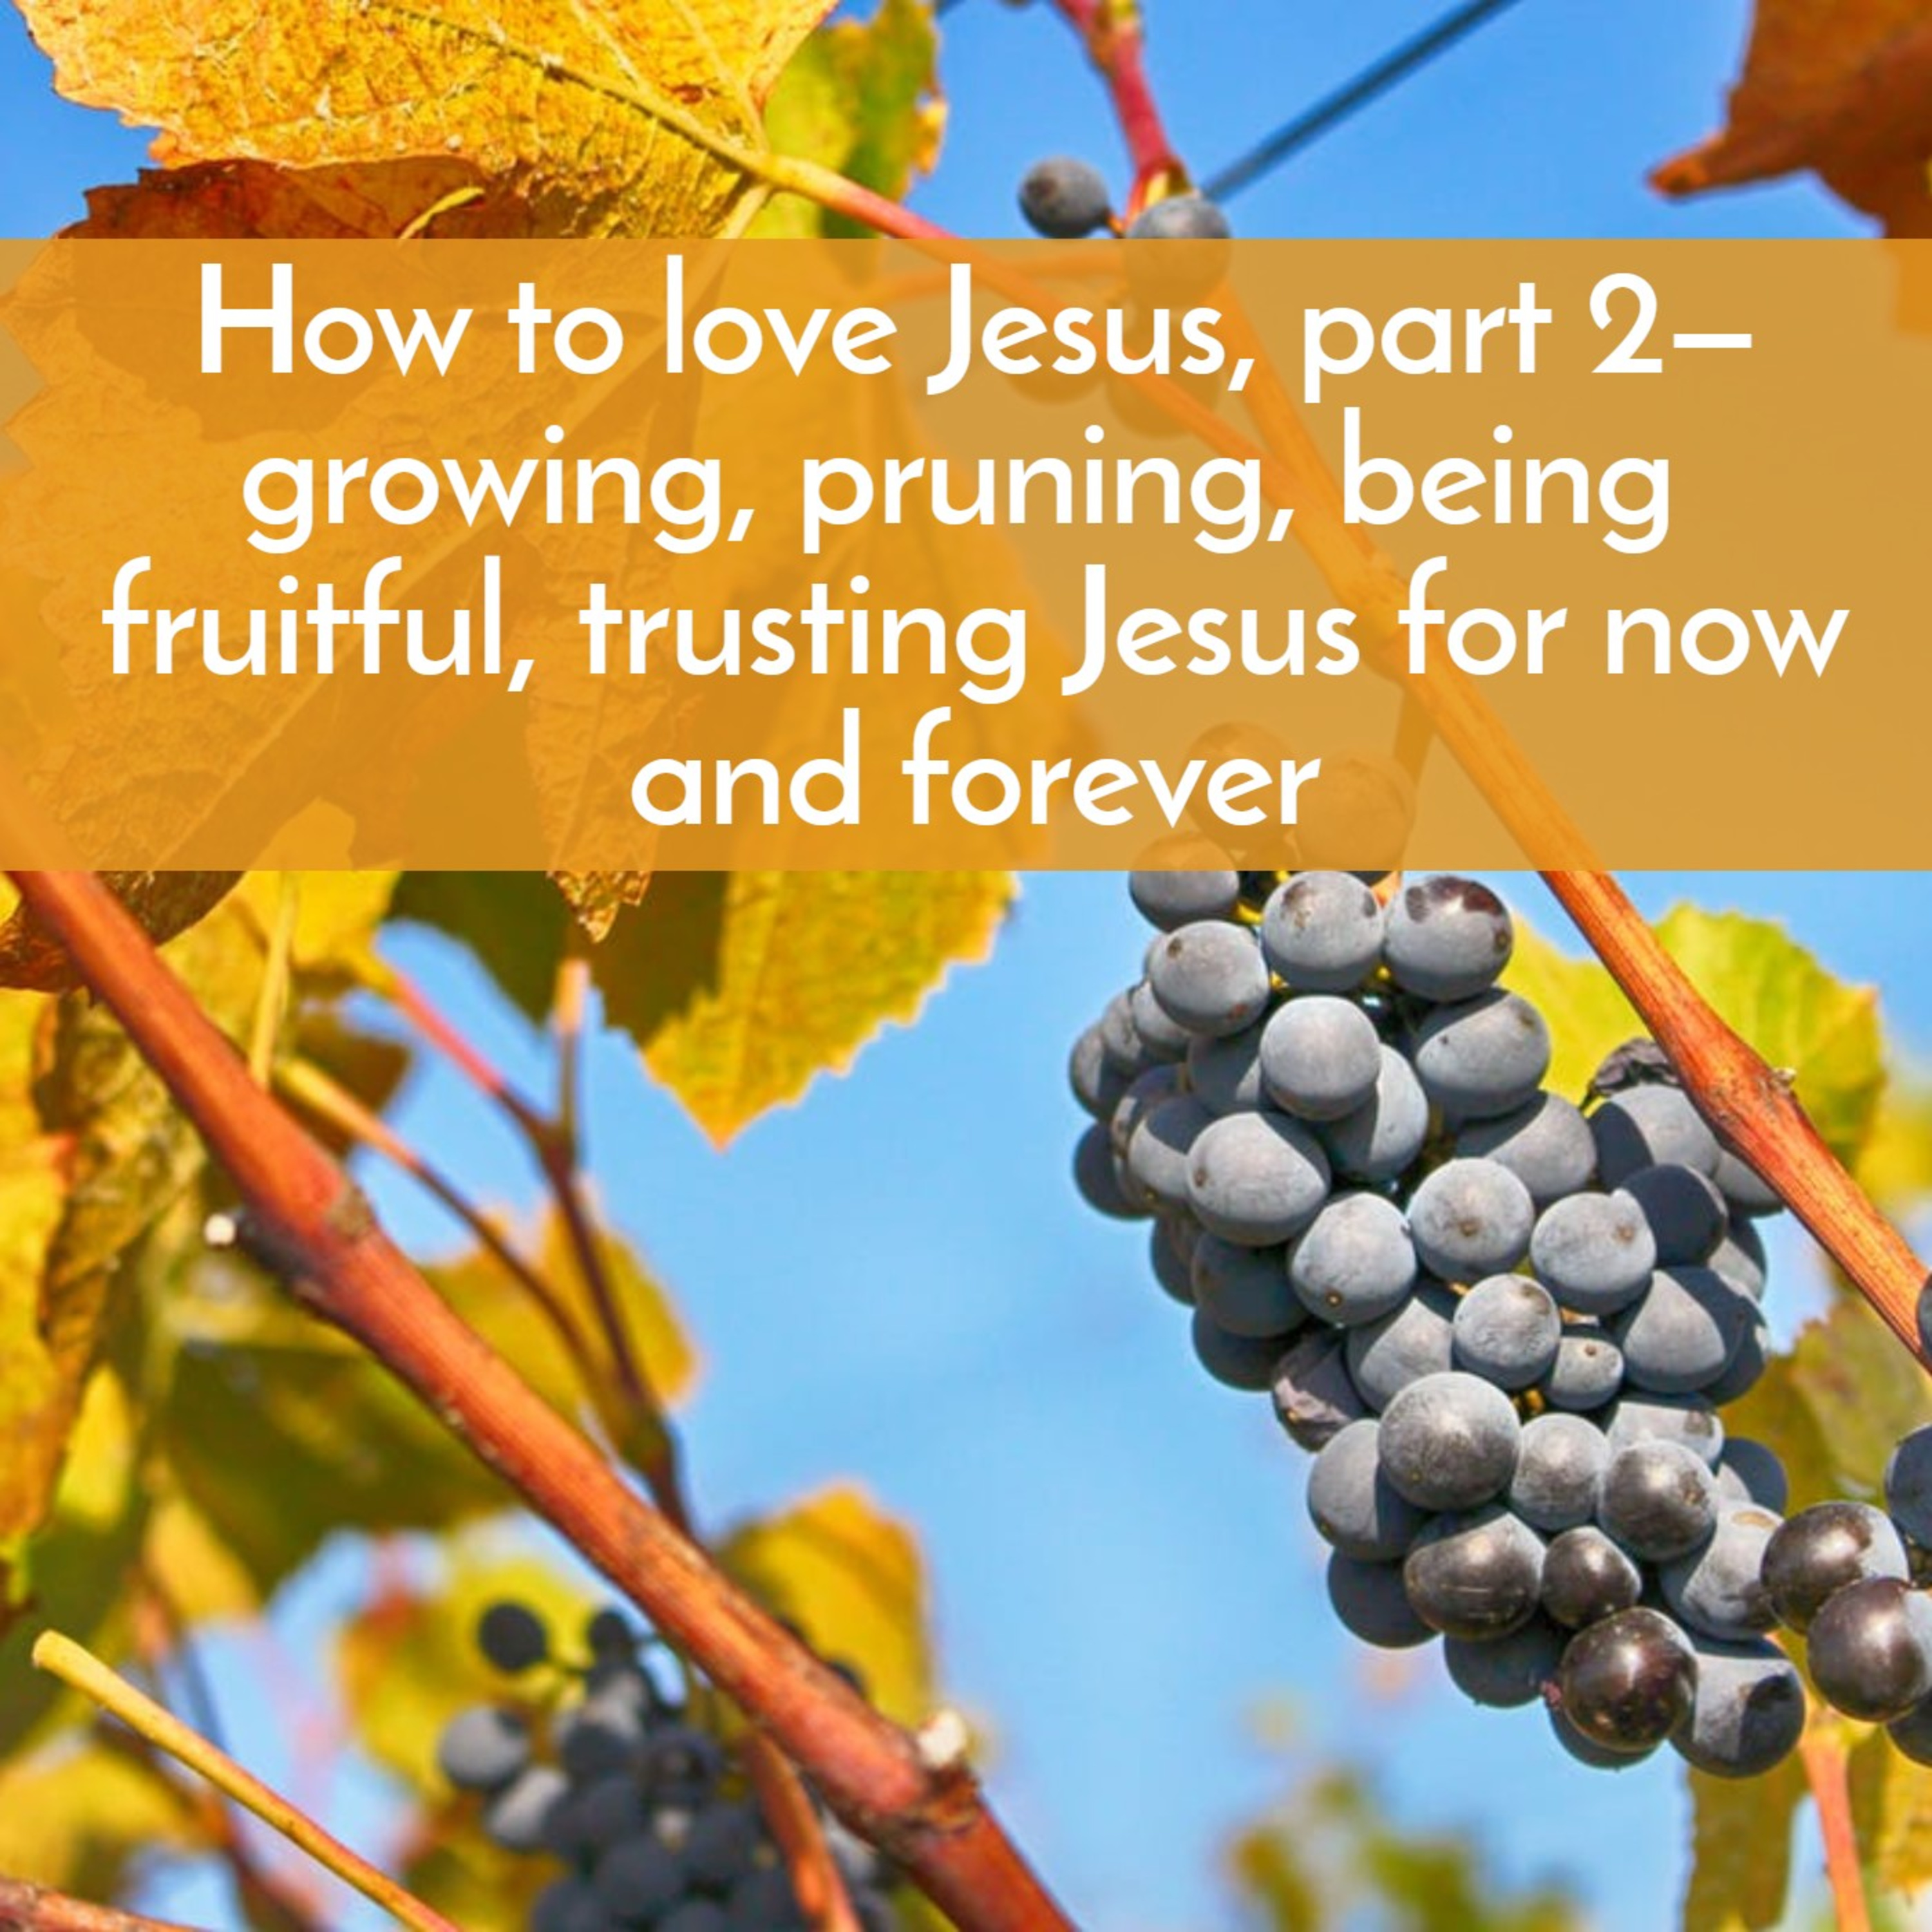 How to love Jesus, part 2—growing, pruning, being fruitful, trusting Jesus for now and forever